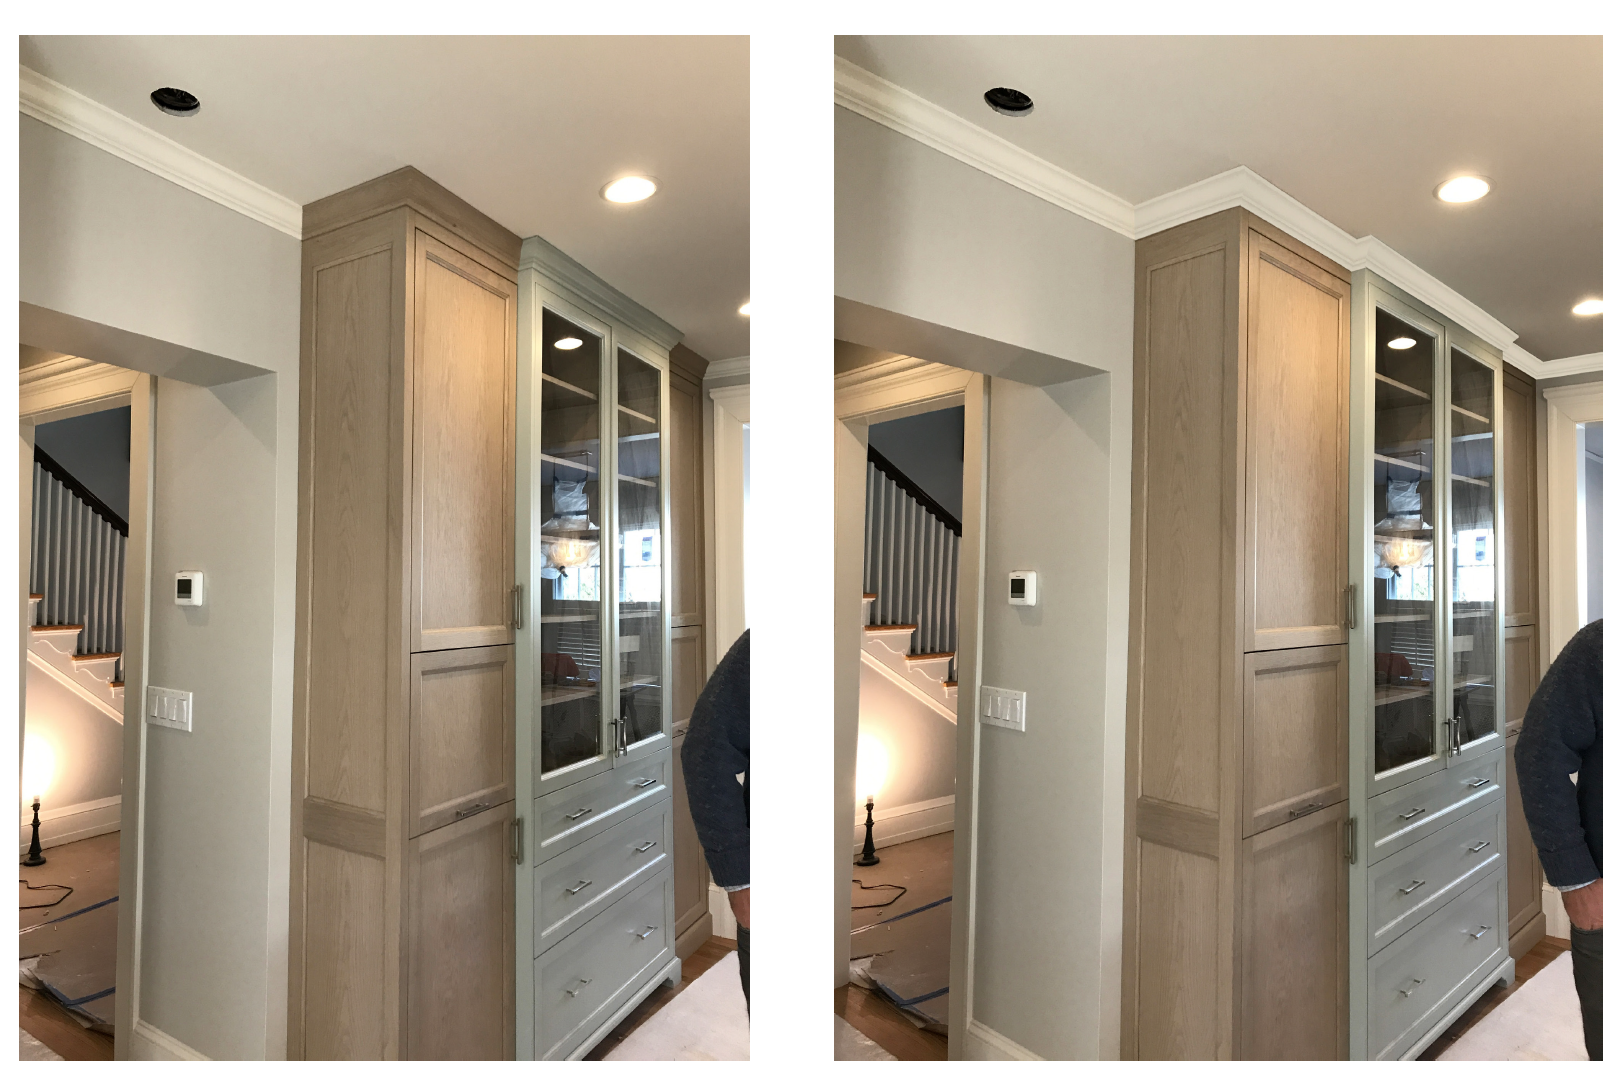 When the cabinetry began going in, this client was concerned that the crown molding on the cabinets did not match the crown molding in the rest of the kitchen. Photoshop renderings quickly helped them understand the difference.